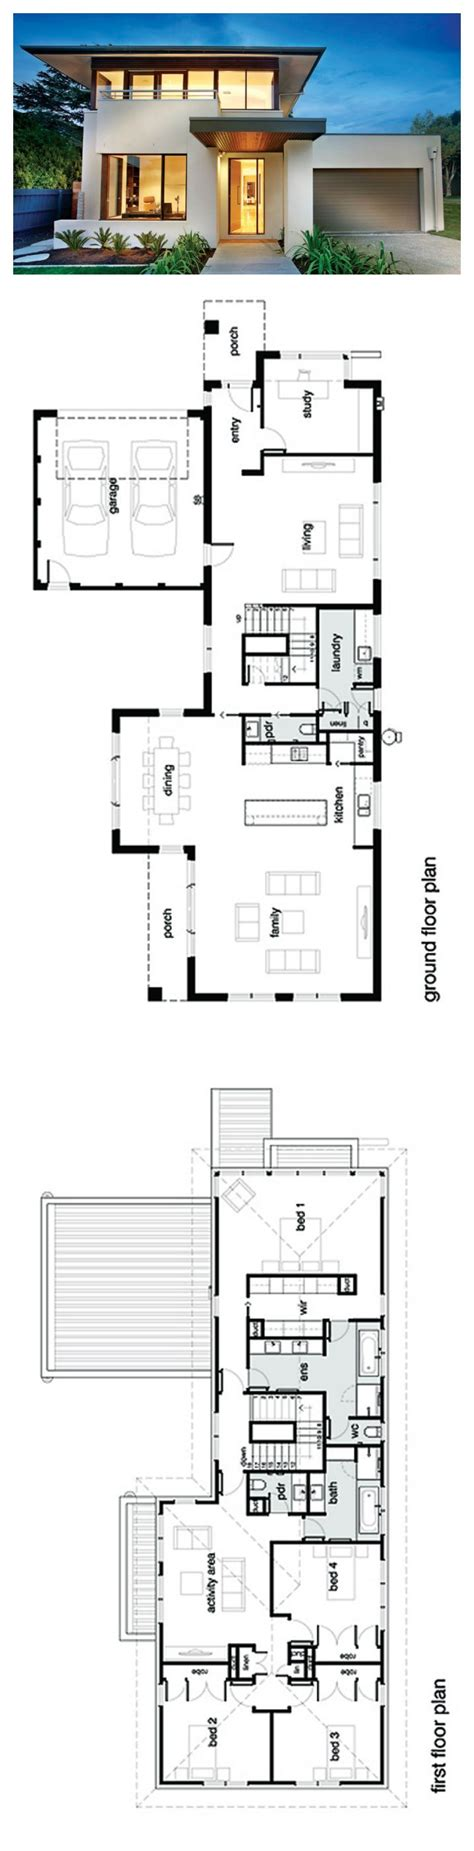 modern house design plans the 25 best ideas about modern house plans on